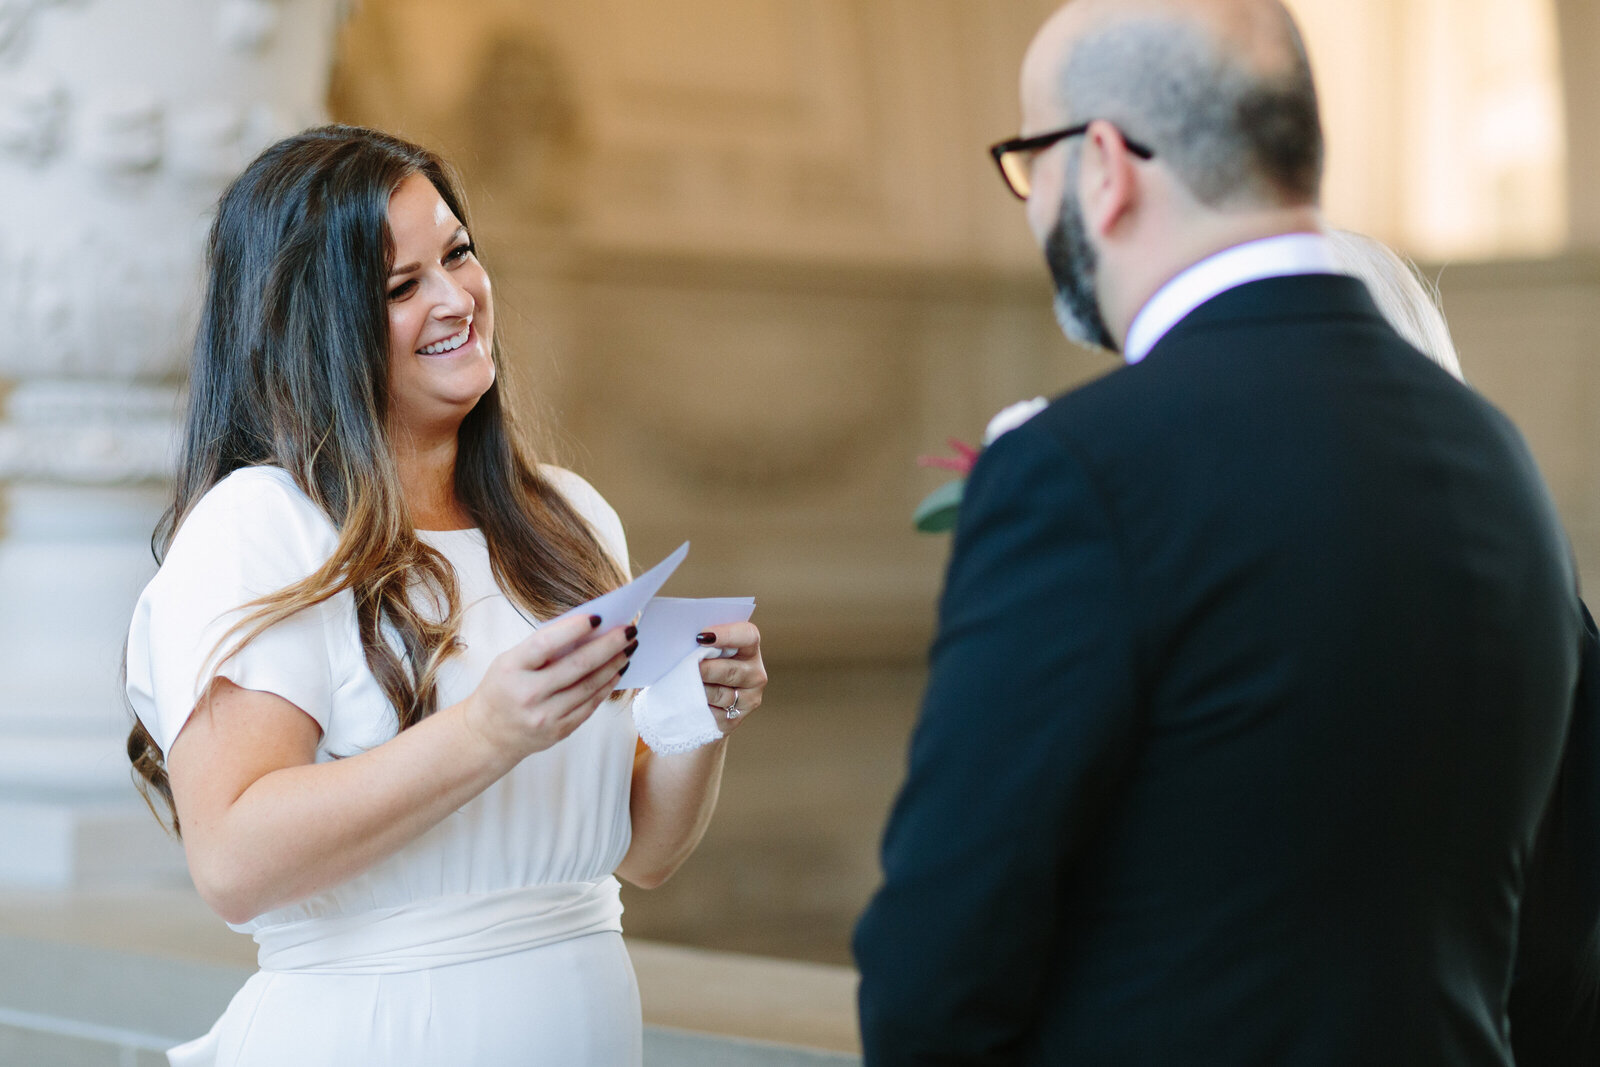 larissa-cleveland-elope-eleopement-intimate-wedding-photographer-san-francisco-napa-carmel-108